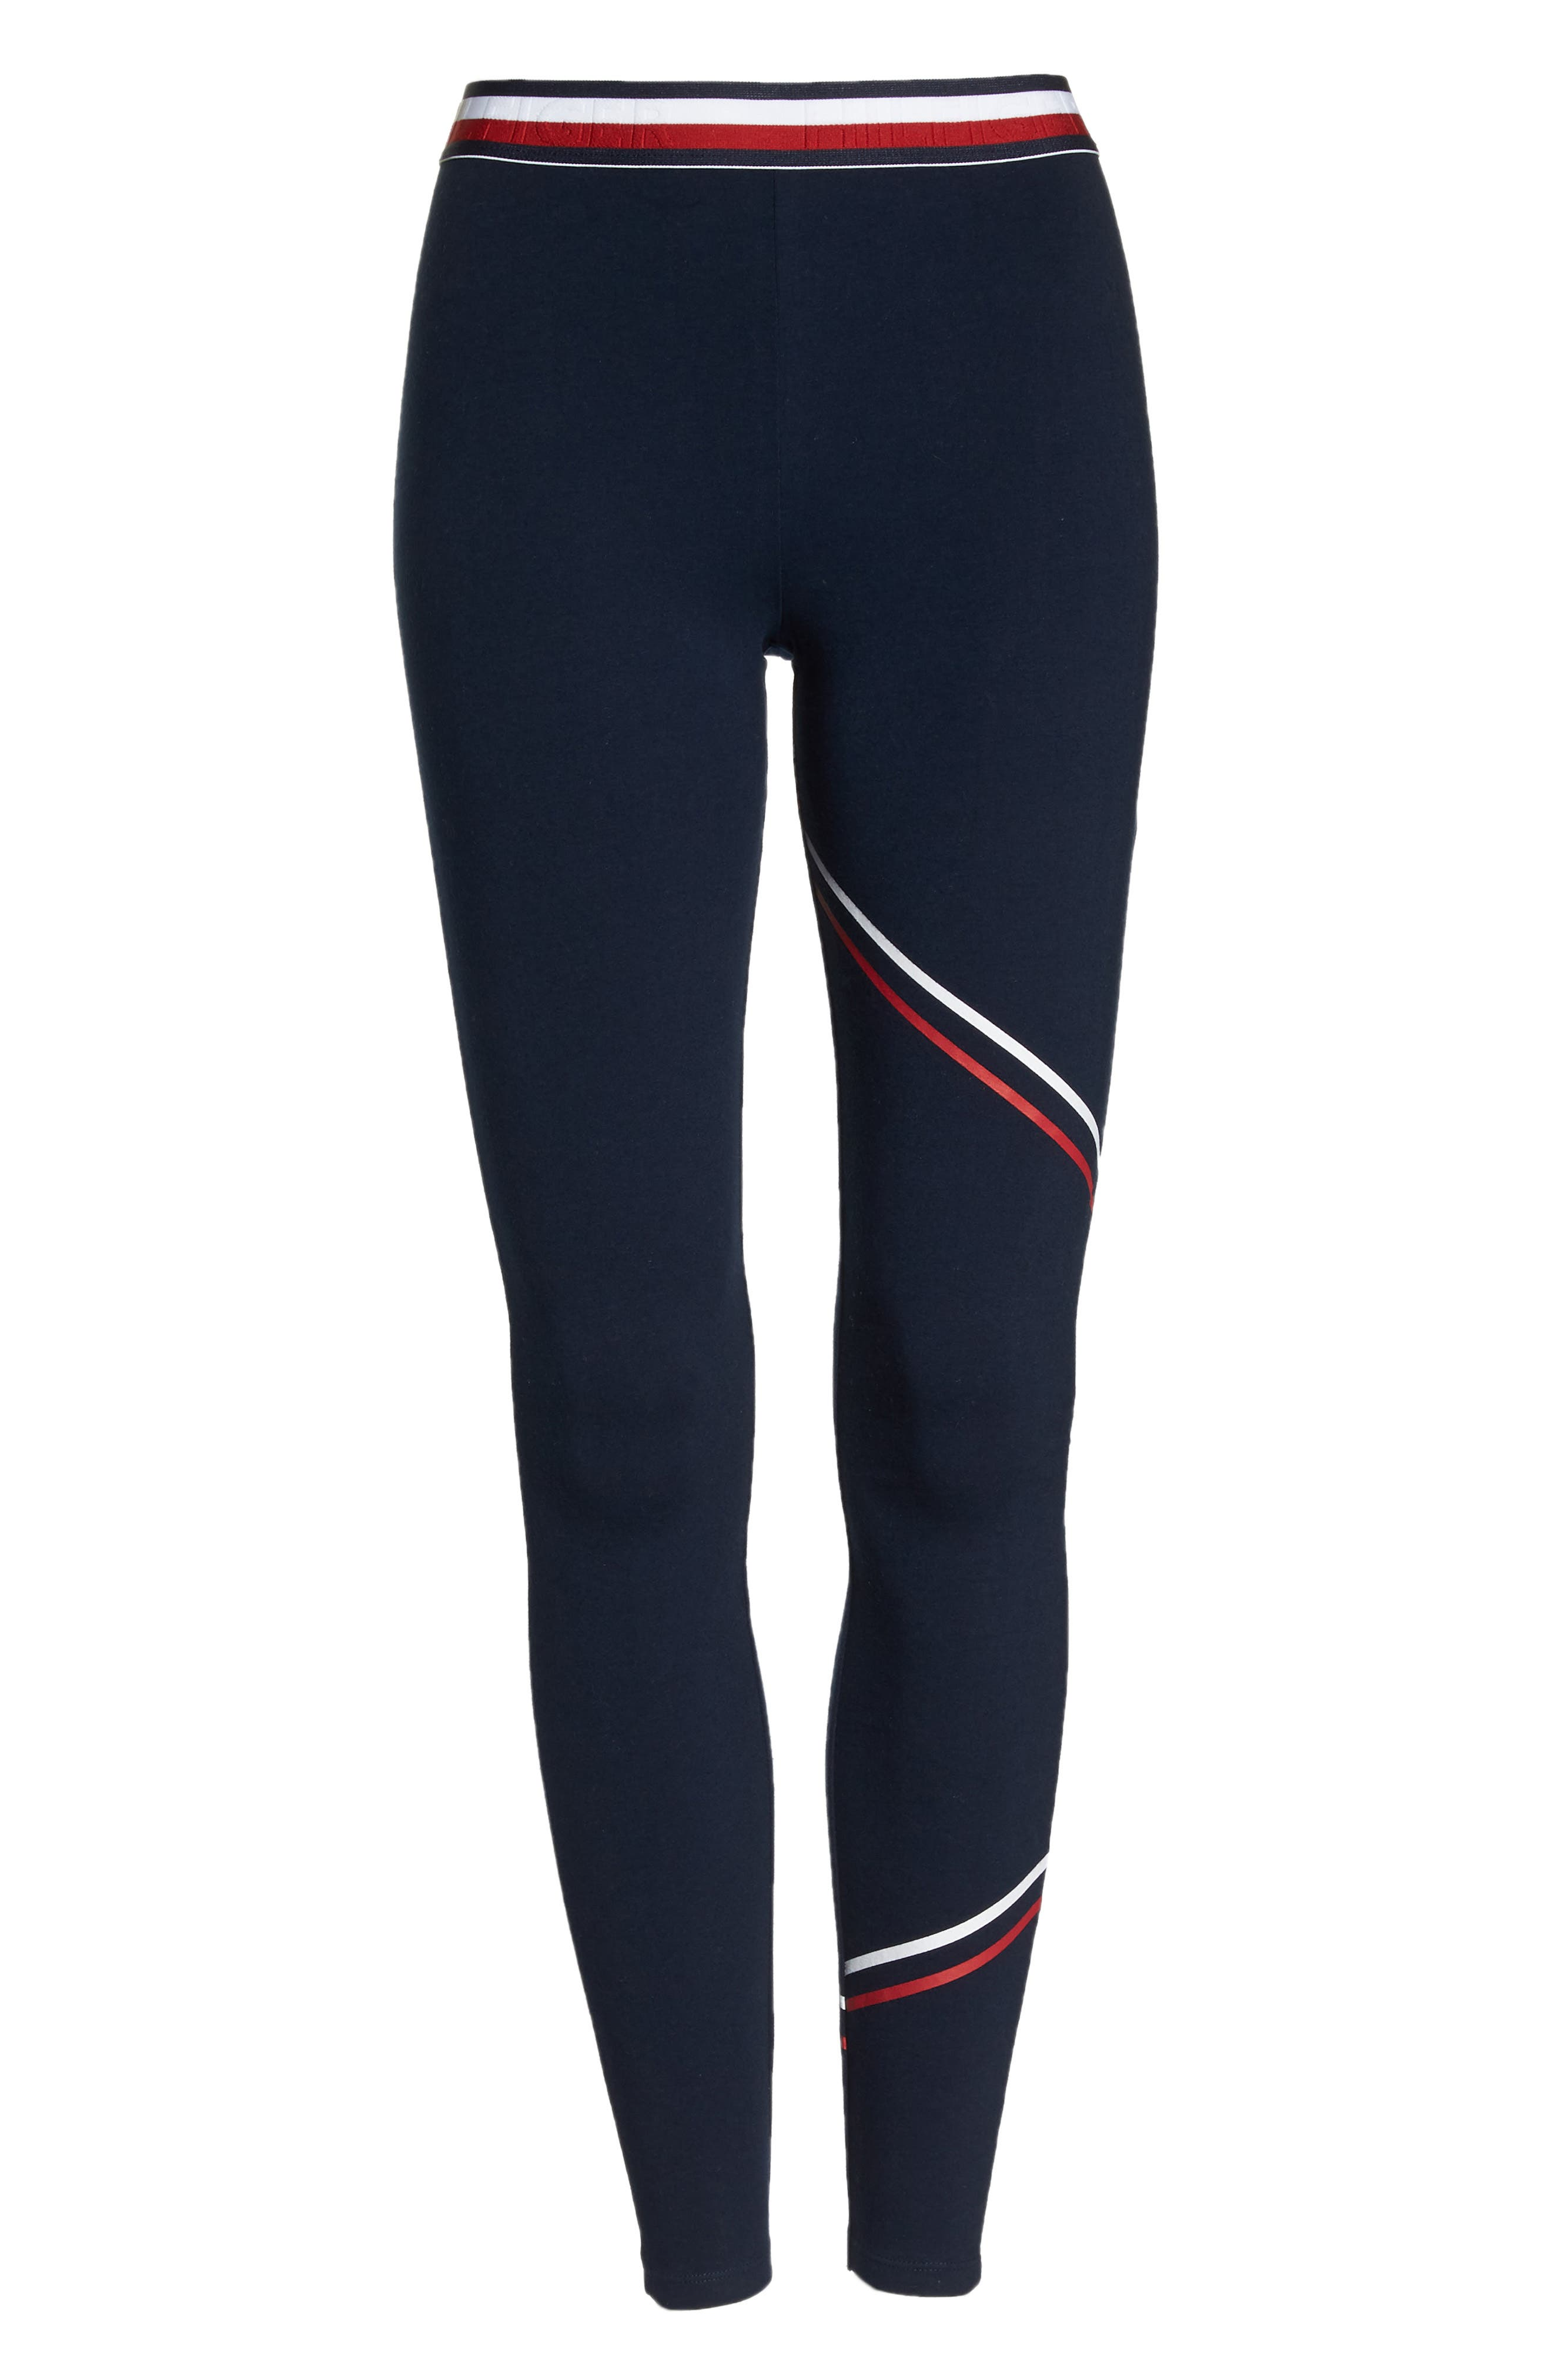 Fitted Pajama Pants,                             Alternate thumbnail 6, color,                             Navy Blazer